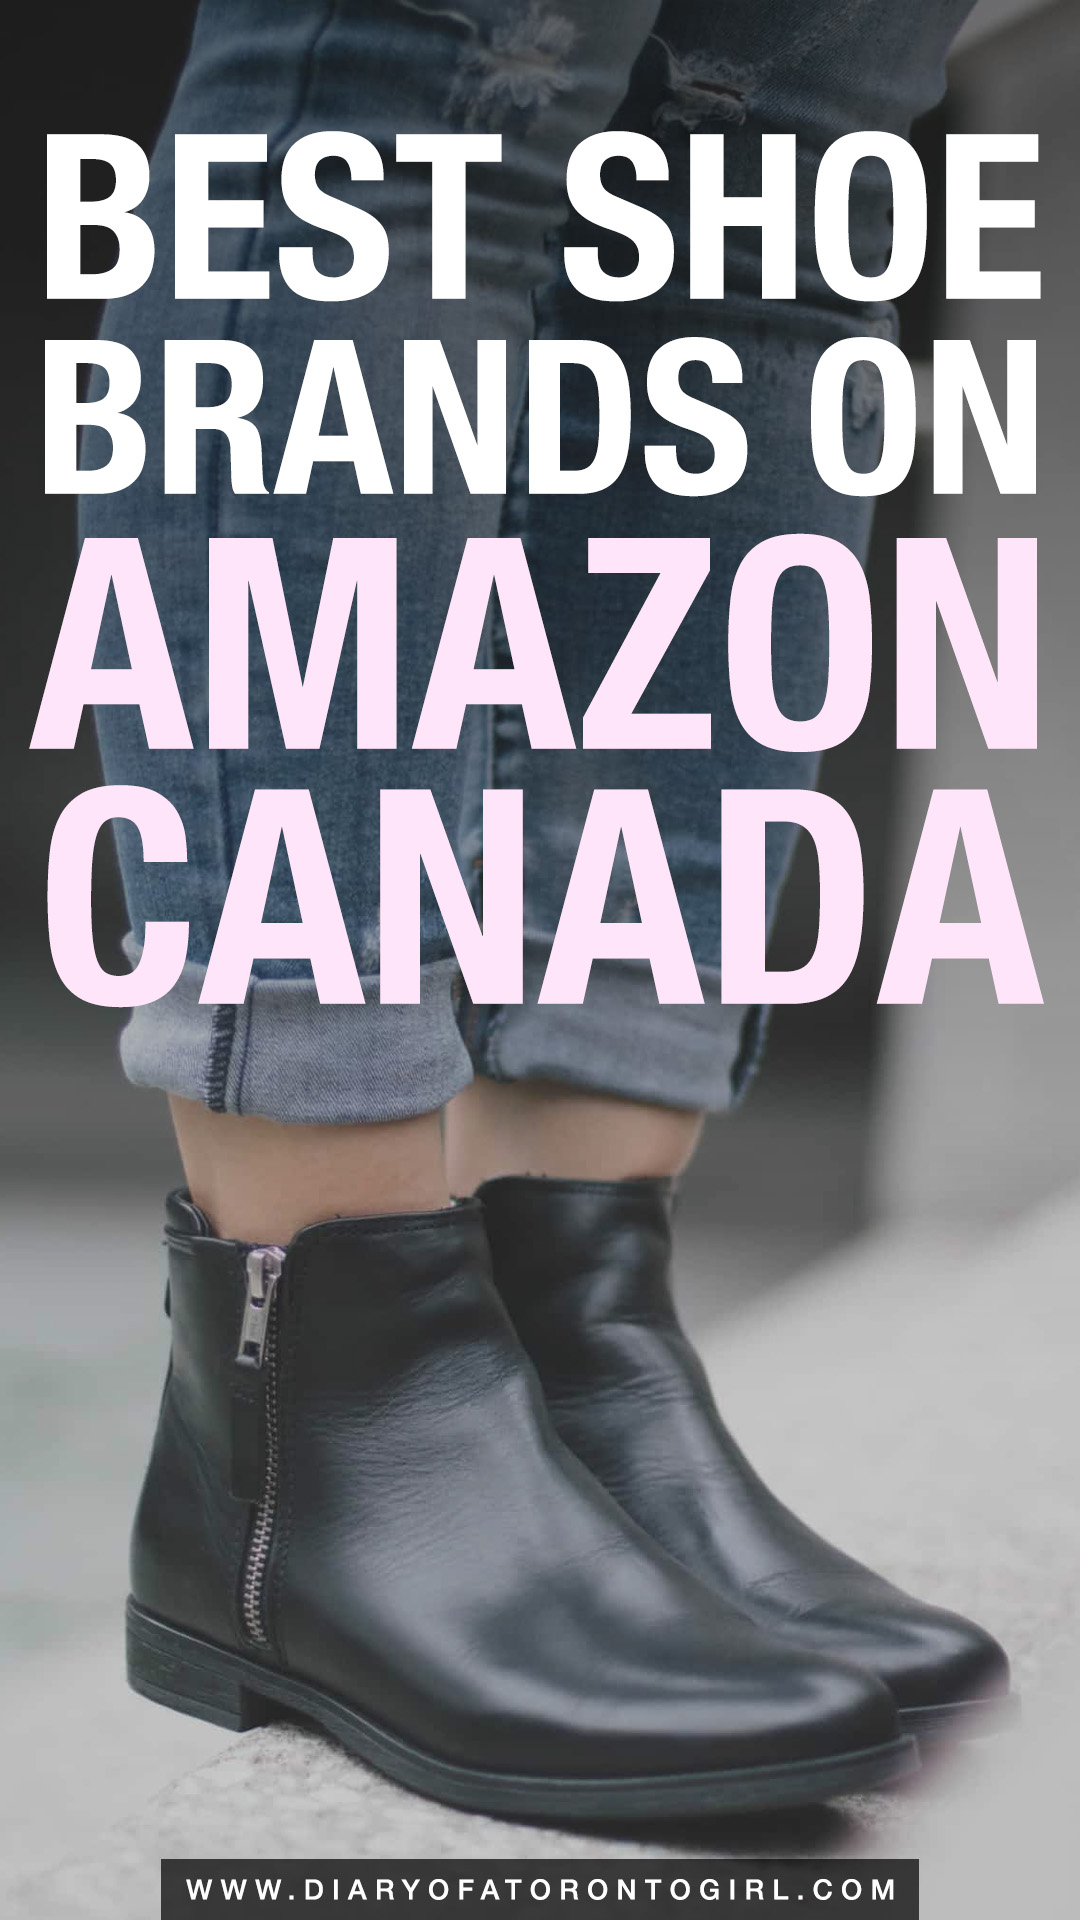 Best shoe brands on Amazon Canada